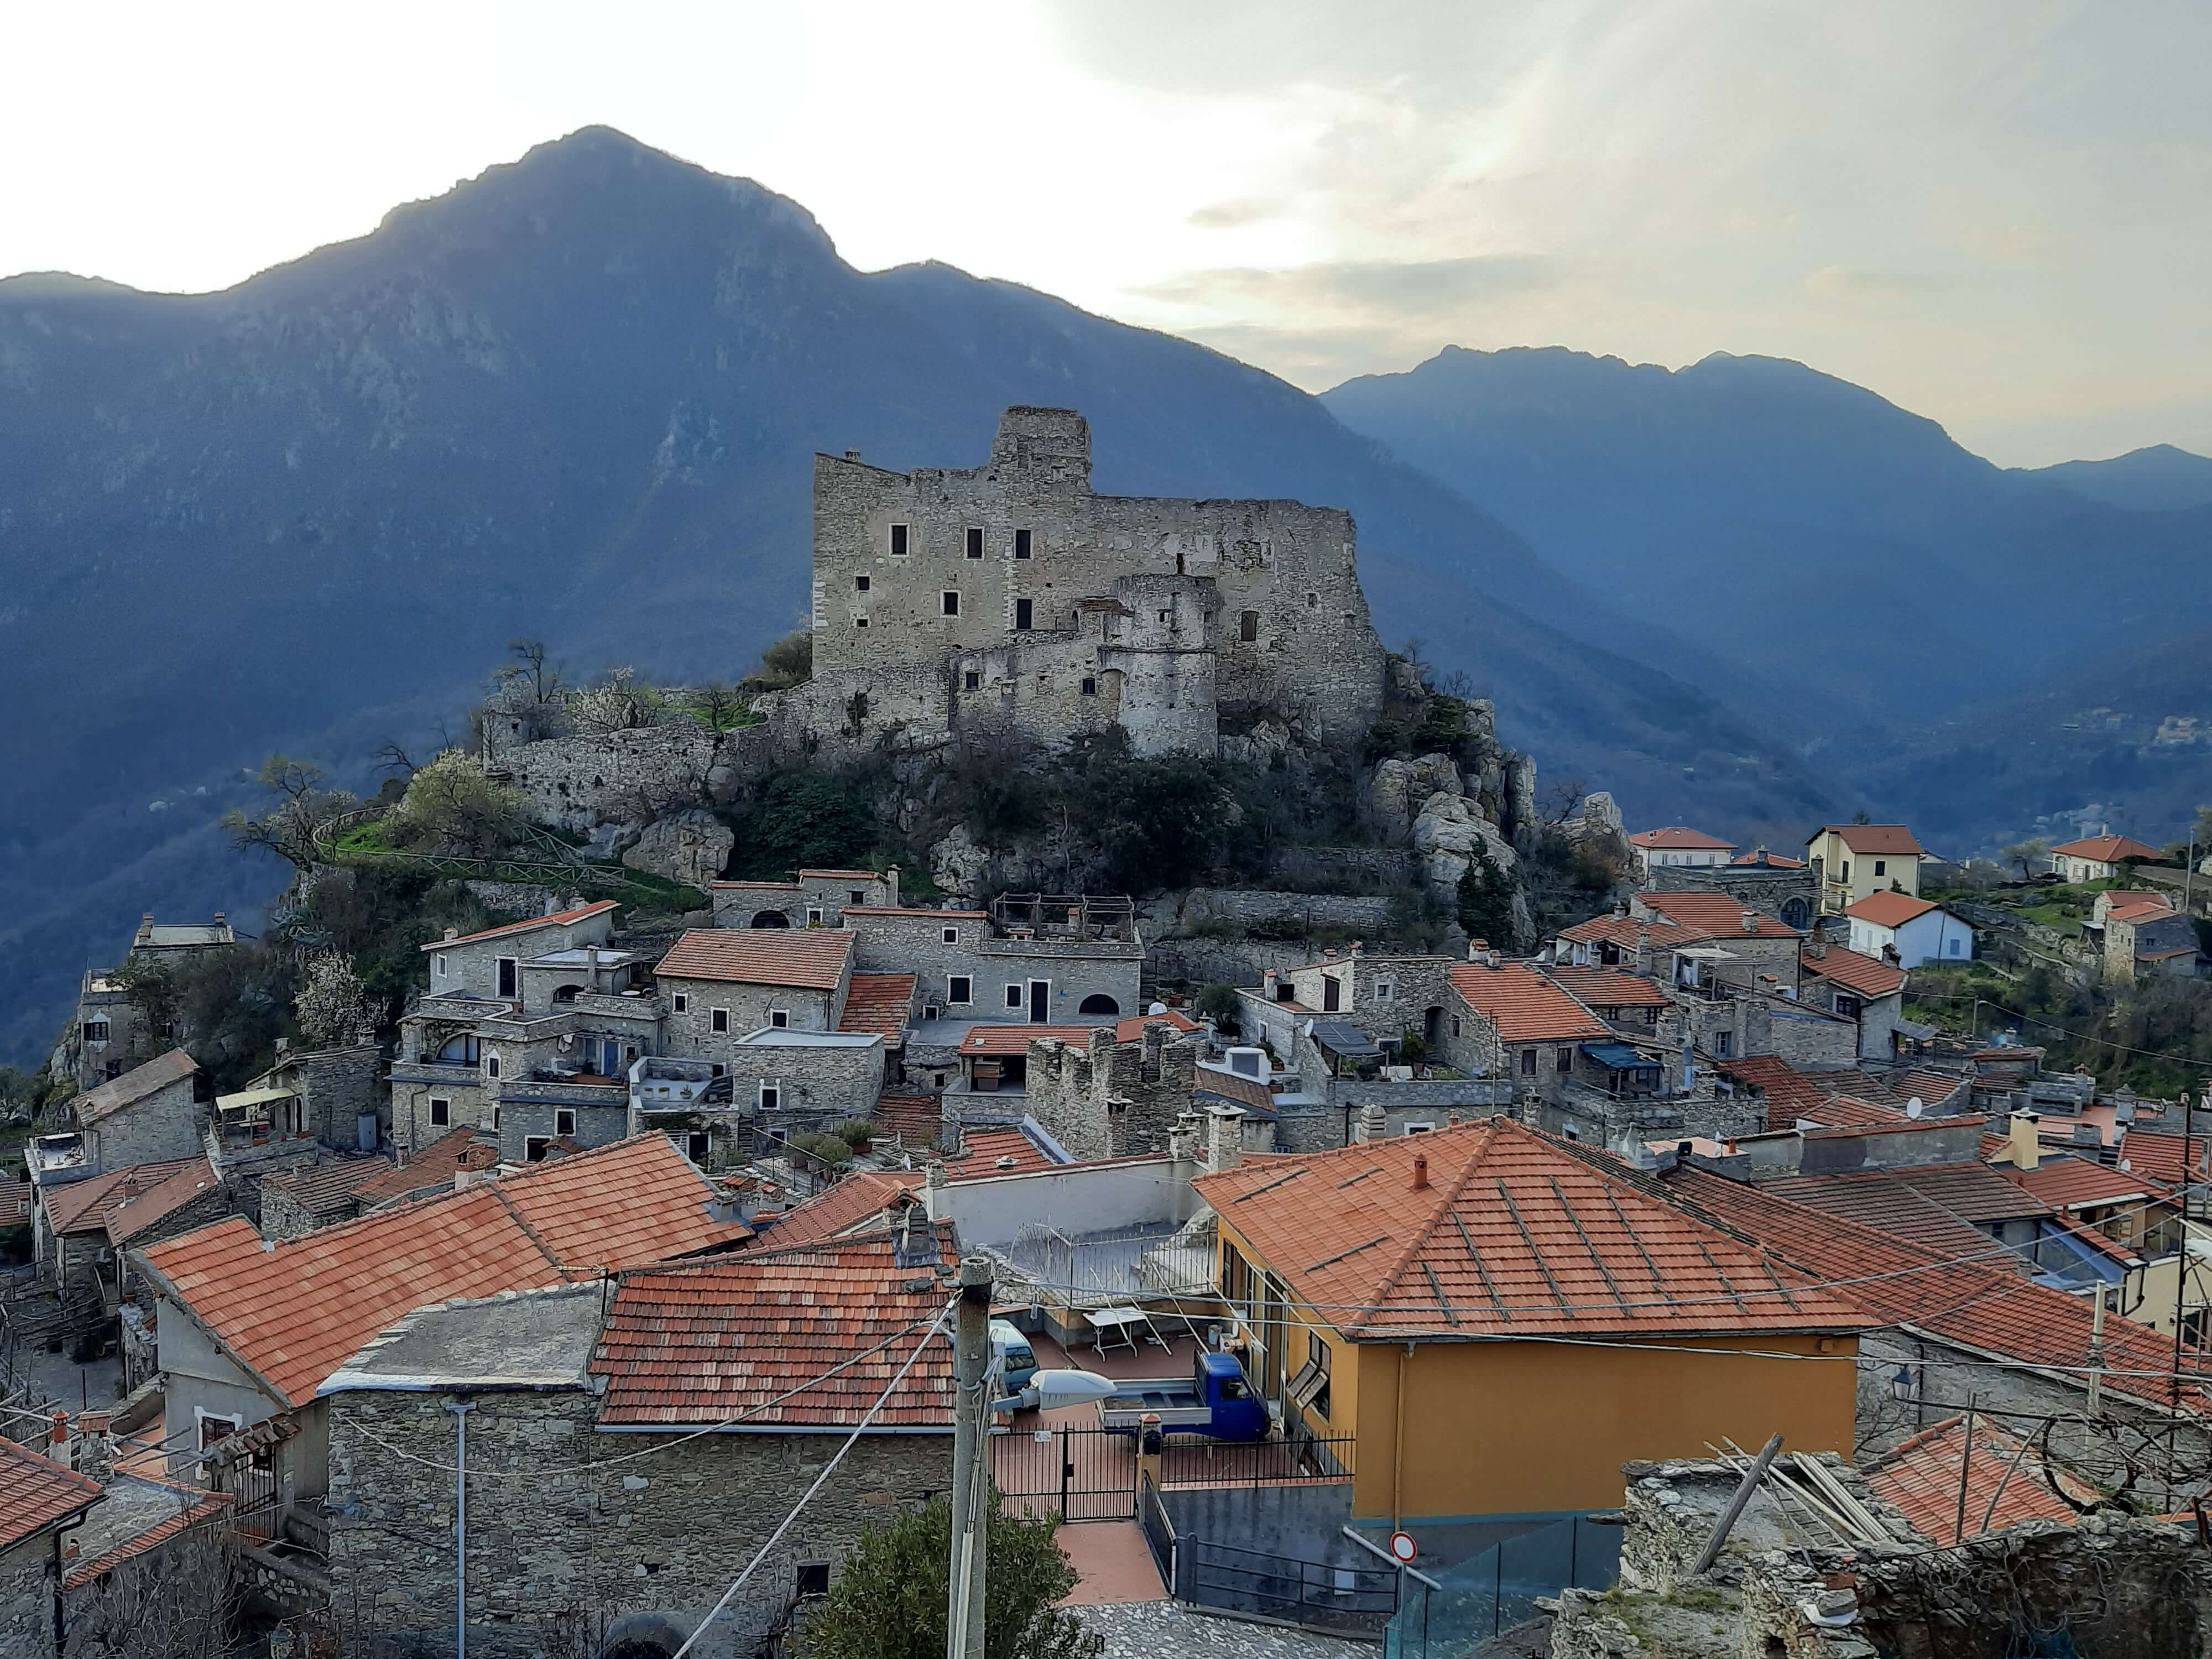 Castelvecchio di Rocca Barbena: one of the most beautiful villages in Italy